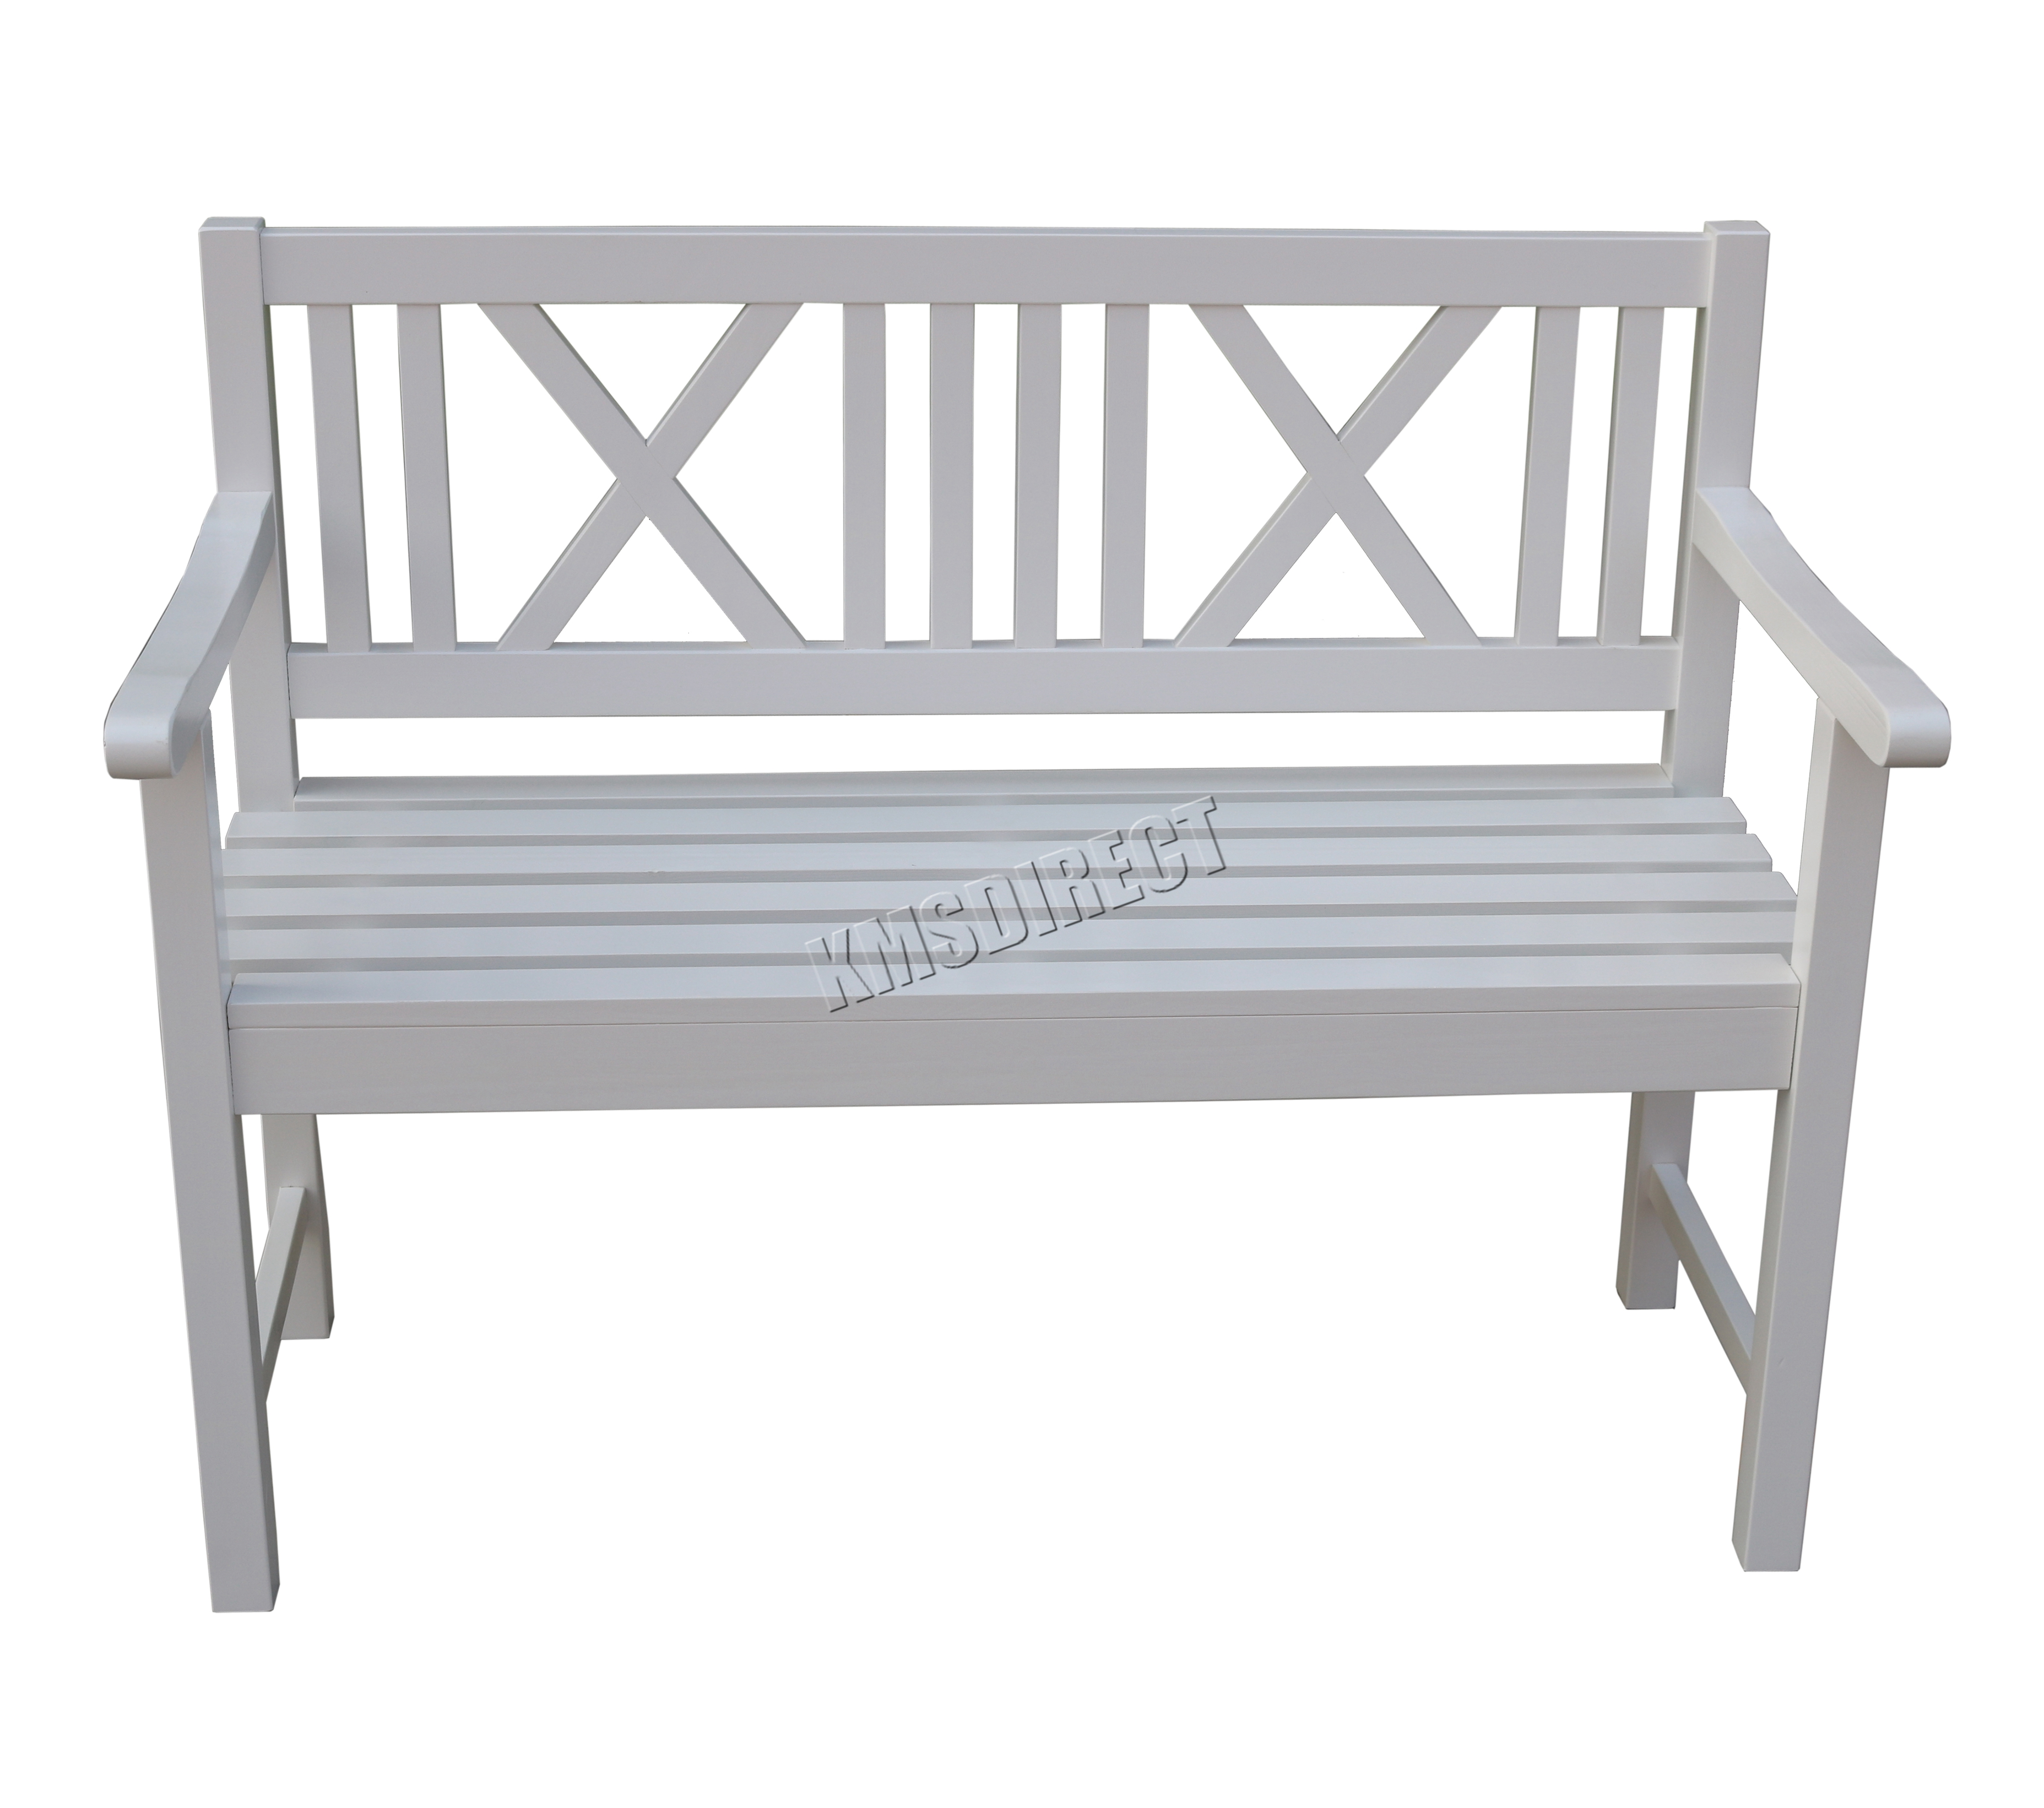 White Bench Seat Foxhunter Outdoor Home 2 Seat Seater Garden Bench Fir Wood